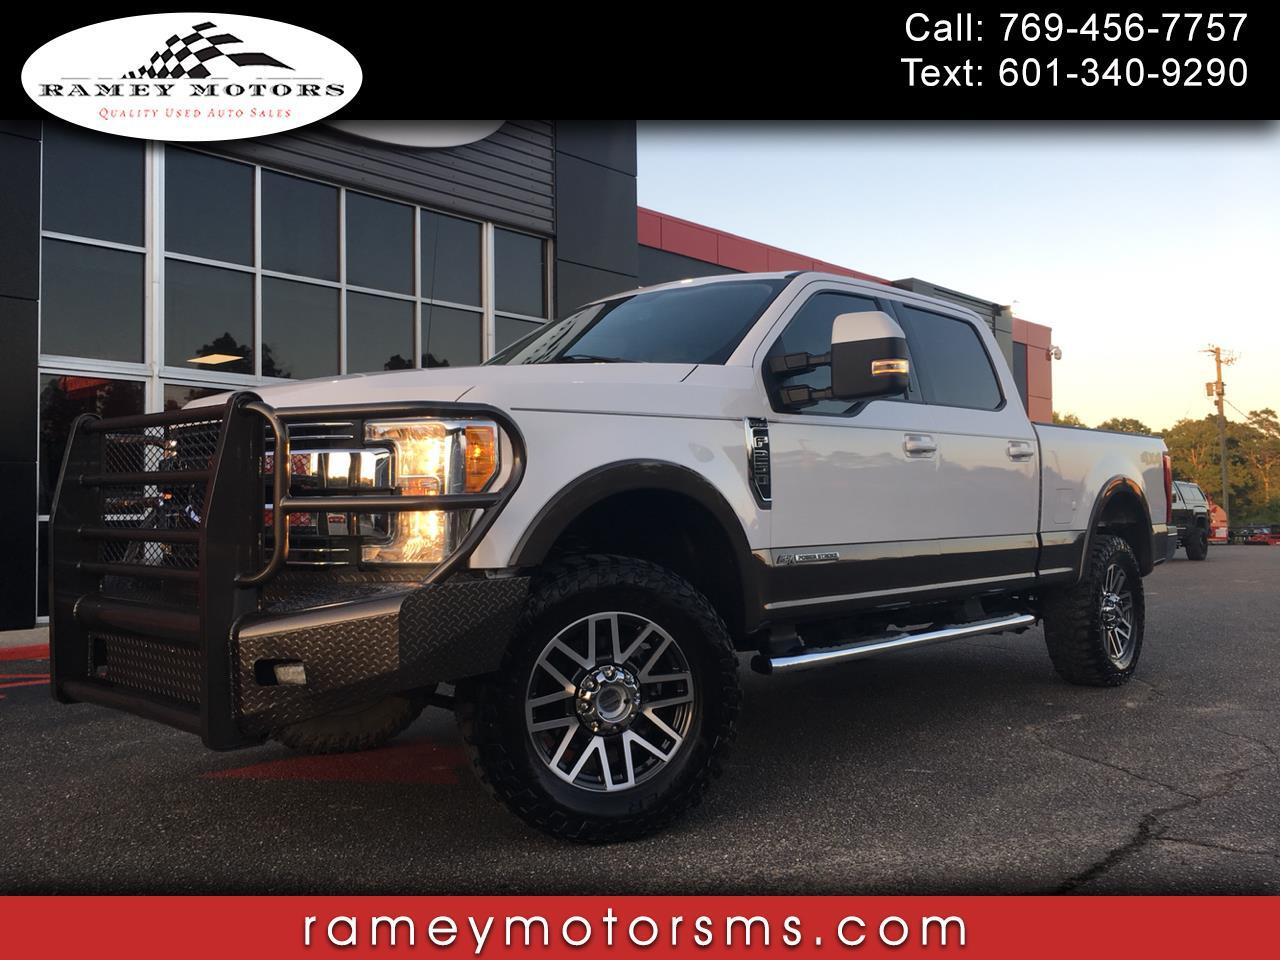 2017 Ford F250 4WD CREWCAB CUSTOM LEVELED LARIAT